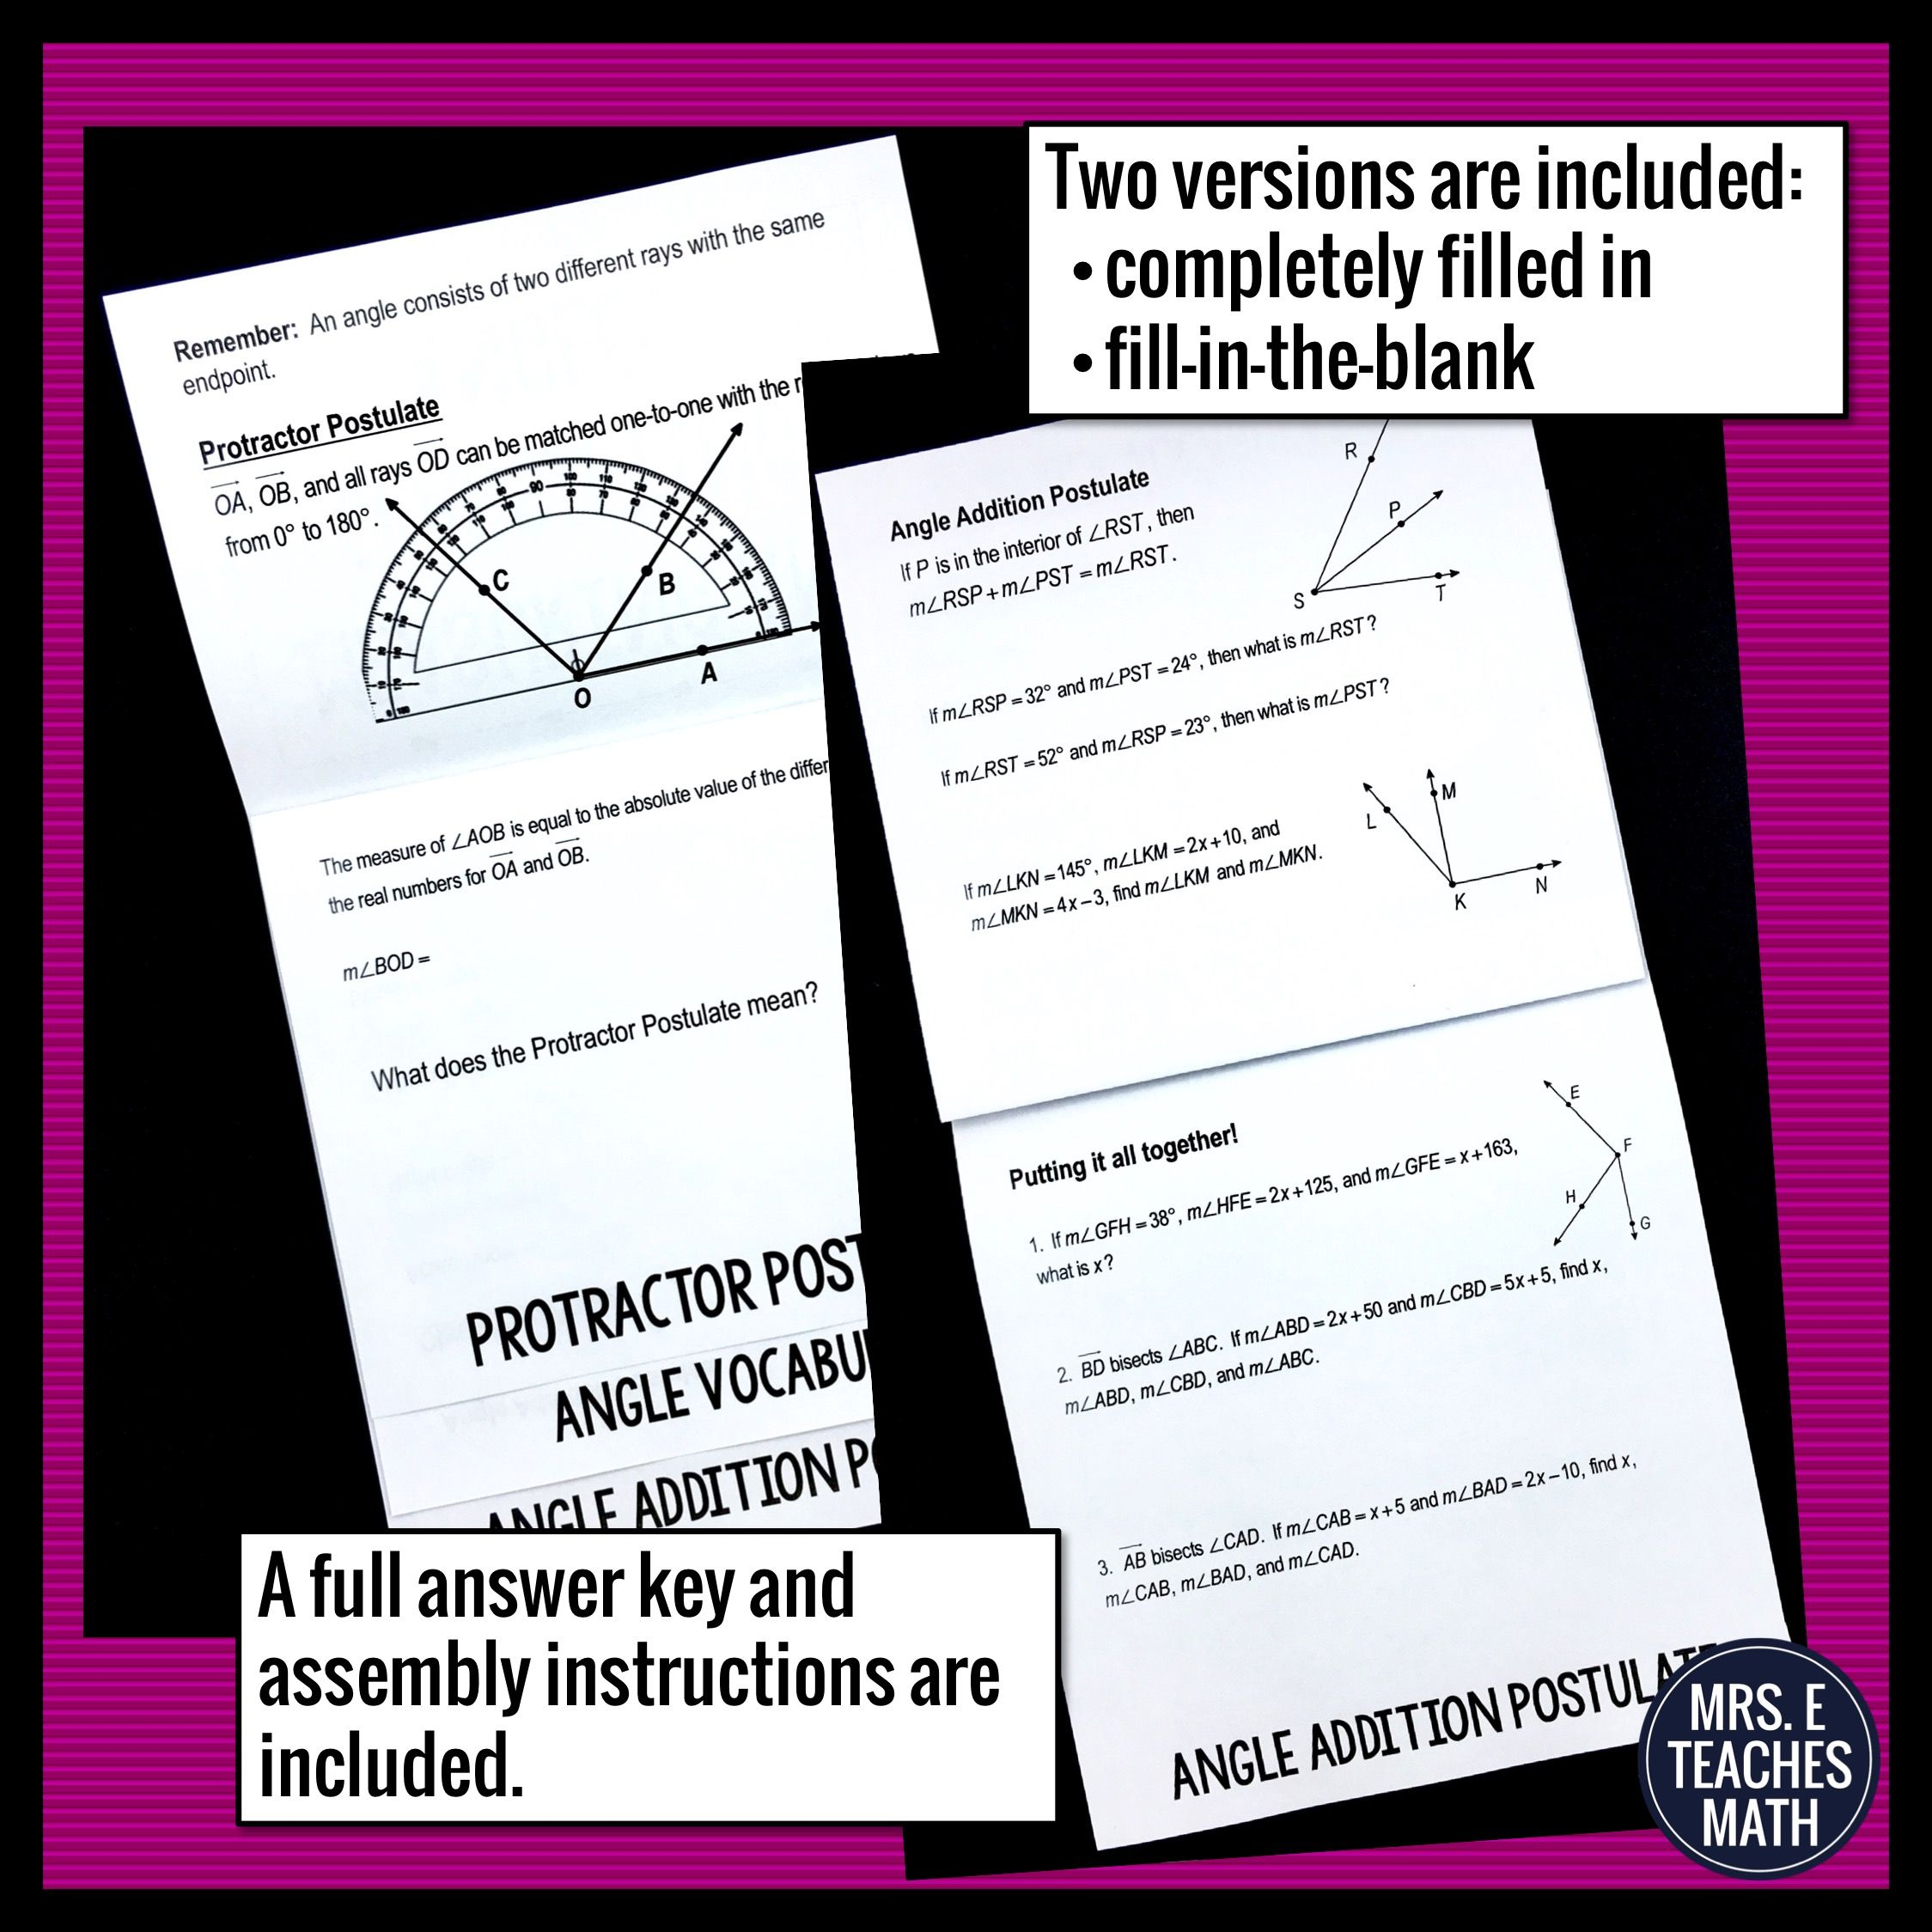 Protractor And Angle Addition Postulate Flipbook